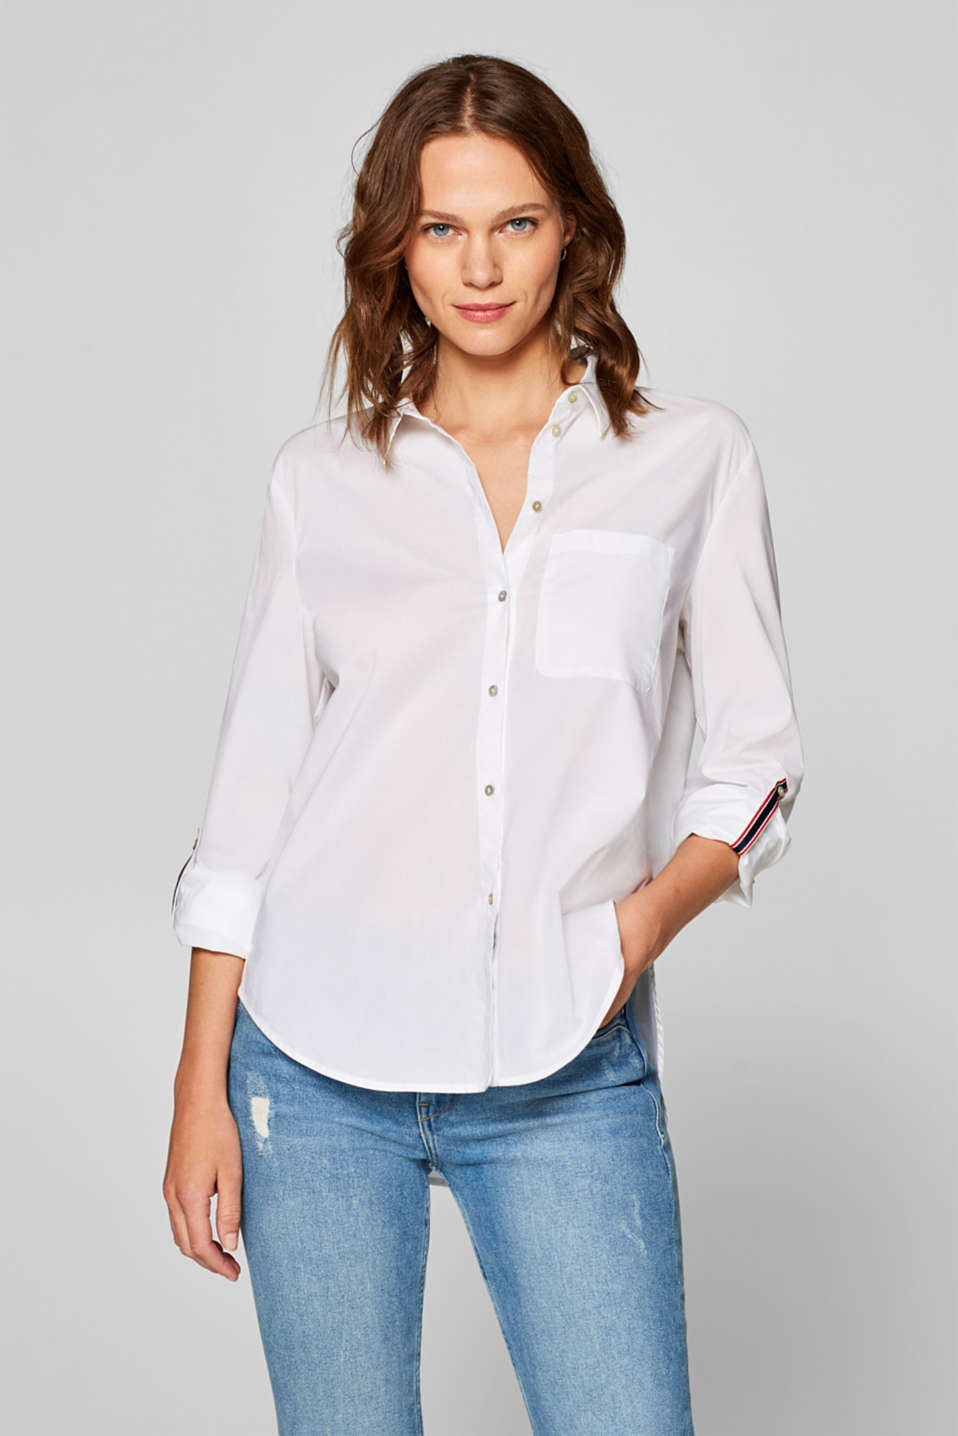 Esprit - Shirt blouse with woven tape details, 100% cotton